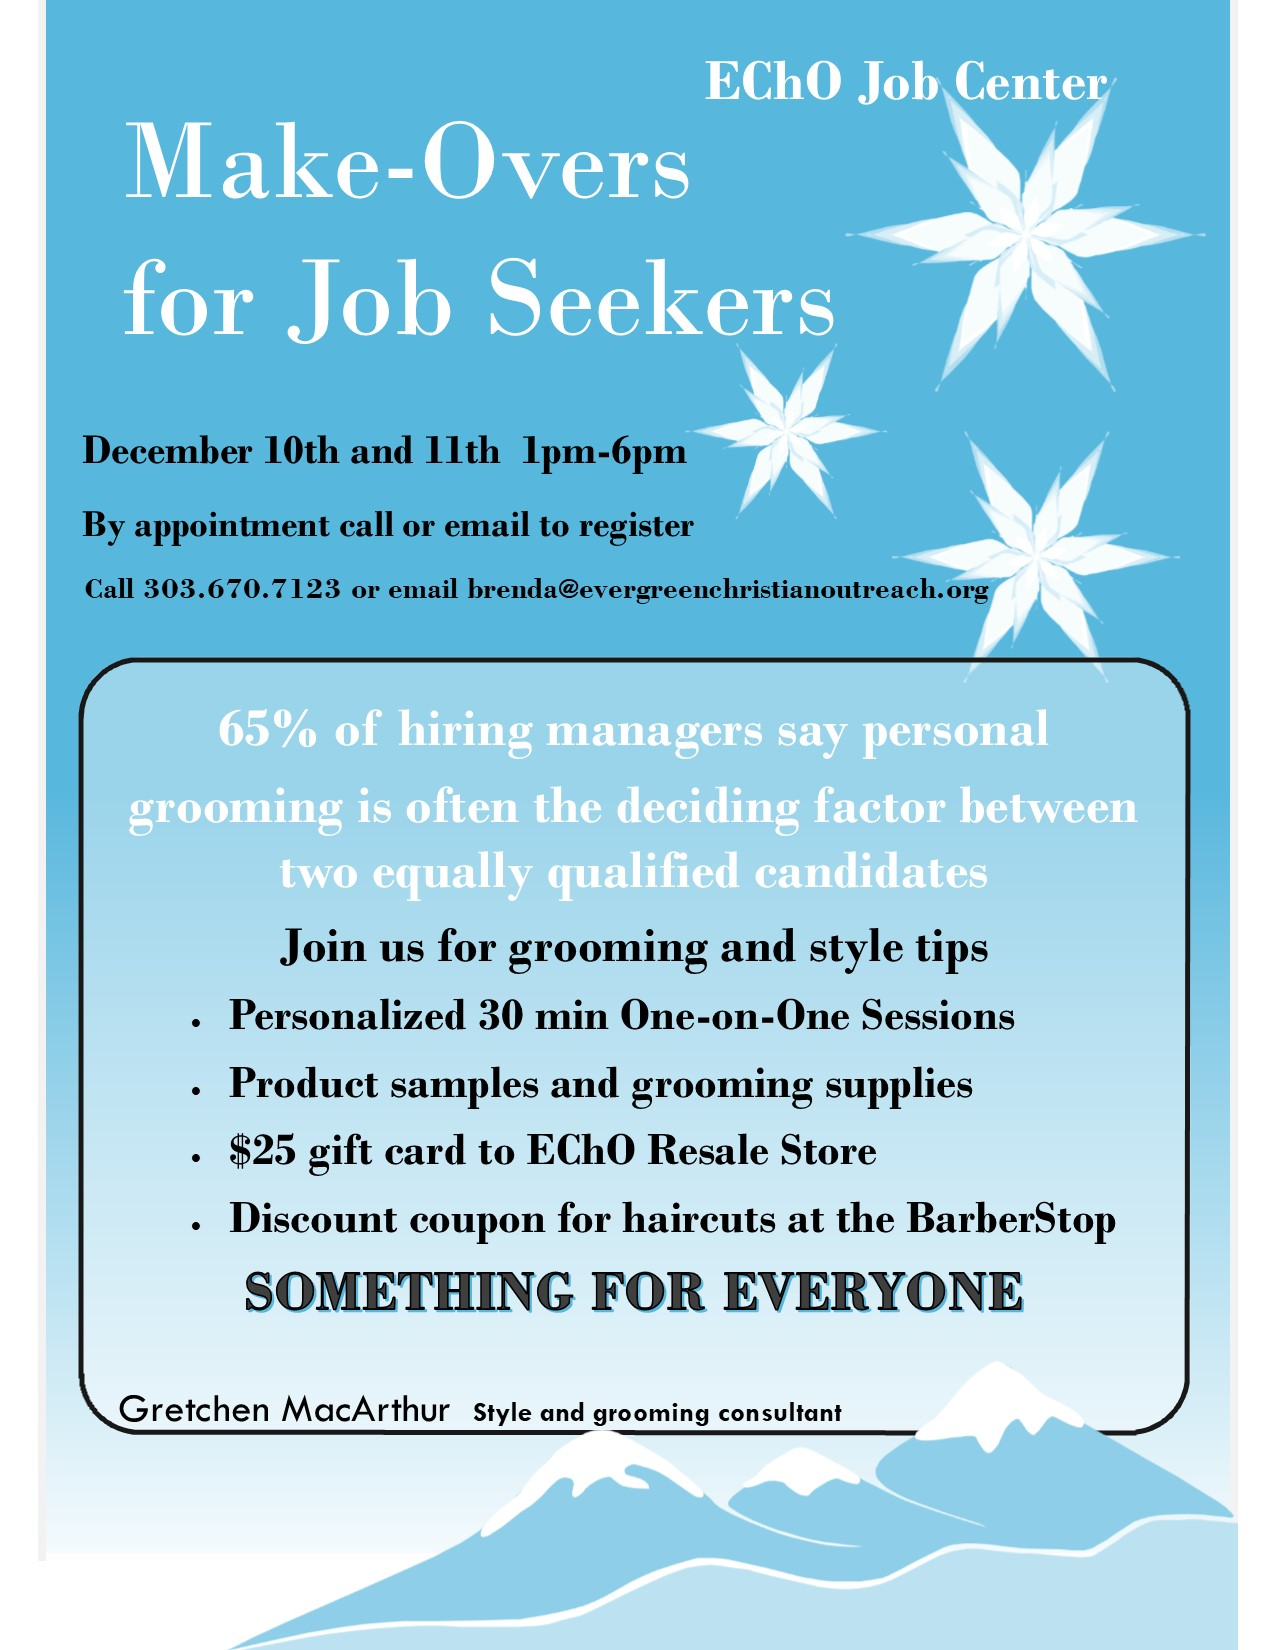 Make-overs for Job Seekers